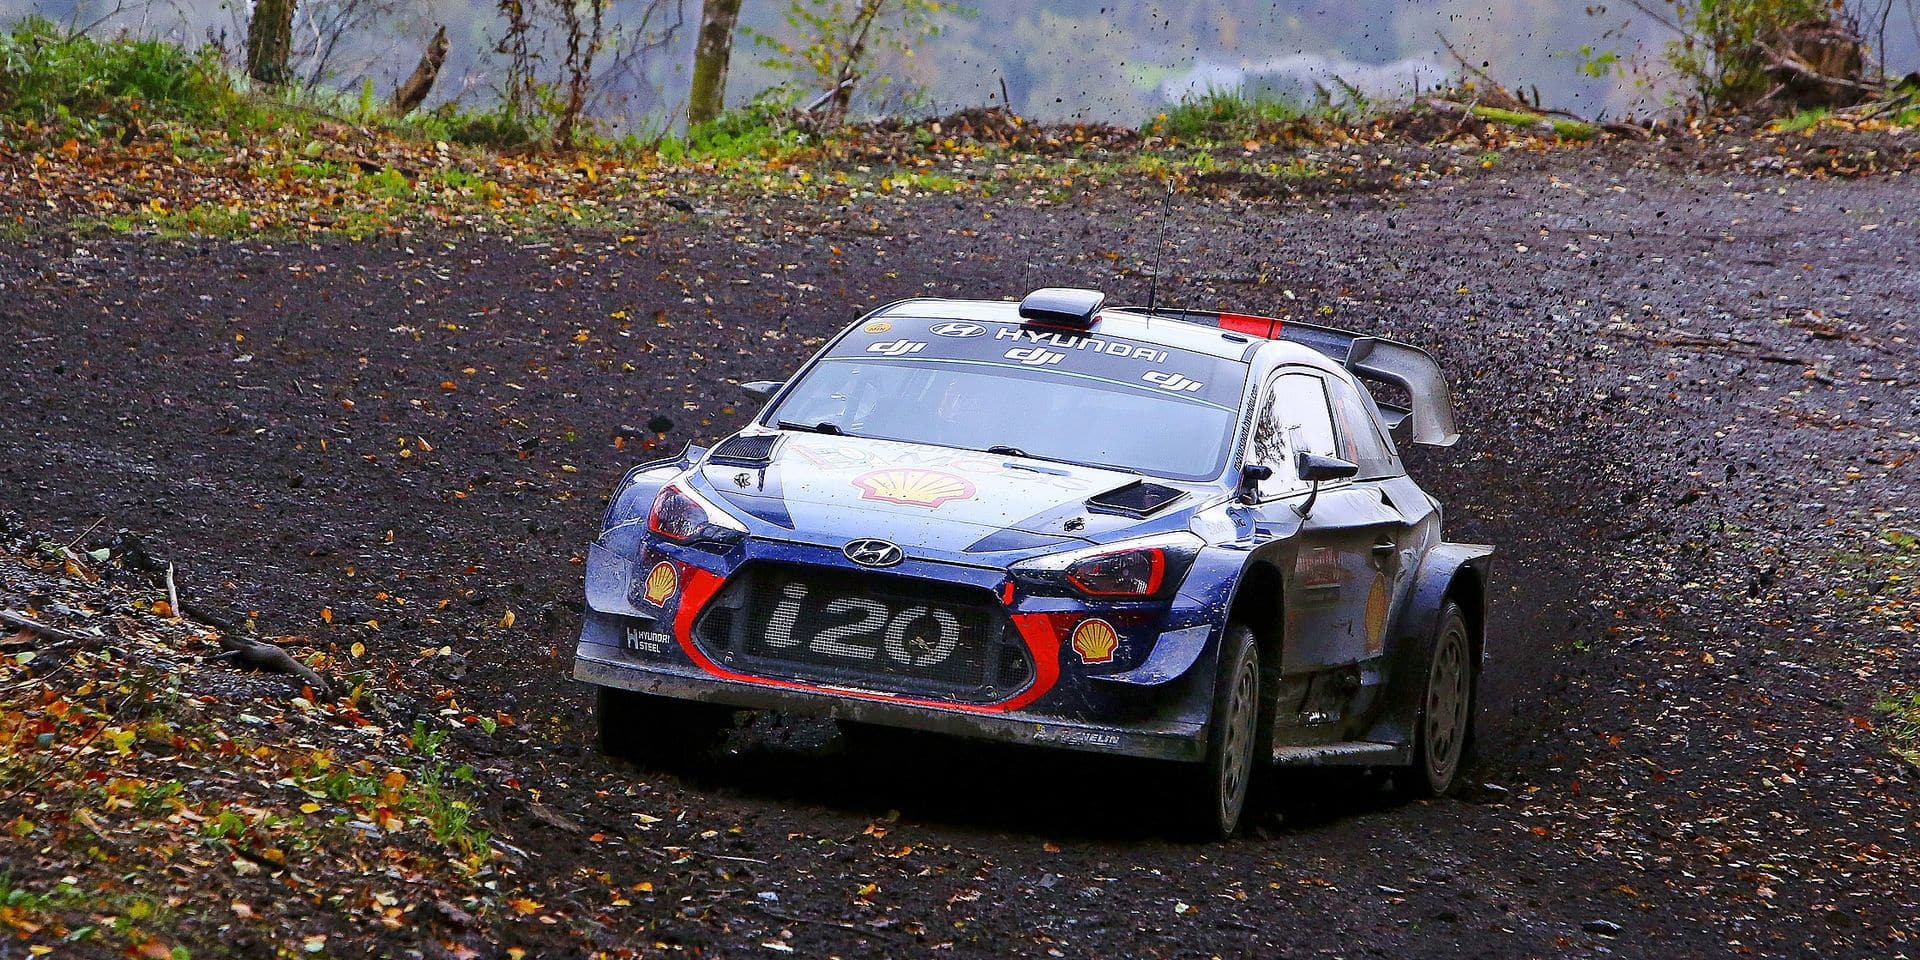 Belgian pilot Thierry Neuville and co pilot Nicolas Gilsoul of Hyundai Motorsport compete in their Hyundai i20 WRC during the special stage 19 of the Wales Rally GB, the penultimate stage of the FIA World Rally Championship, in Gwydir, Mid Wales on October 29, 2017. / AFP PHOTO / Geoff CADDICK